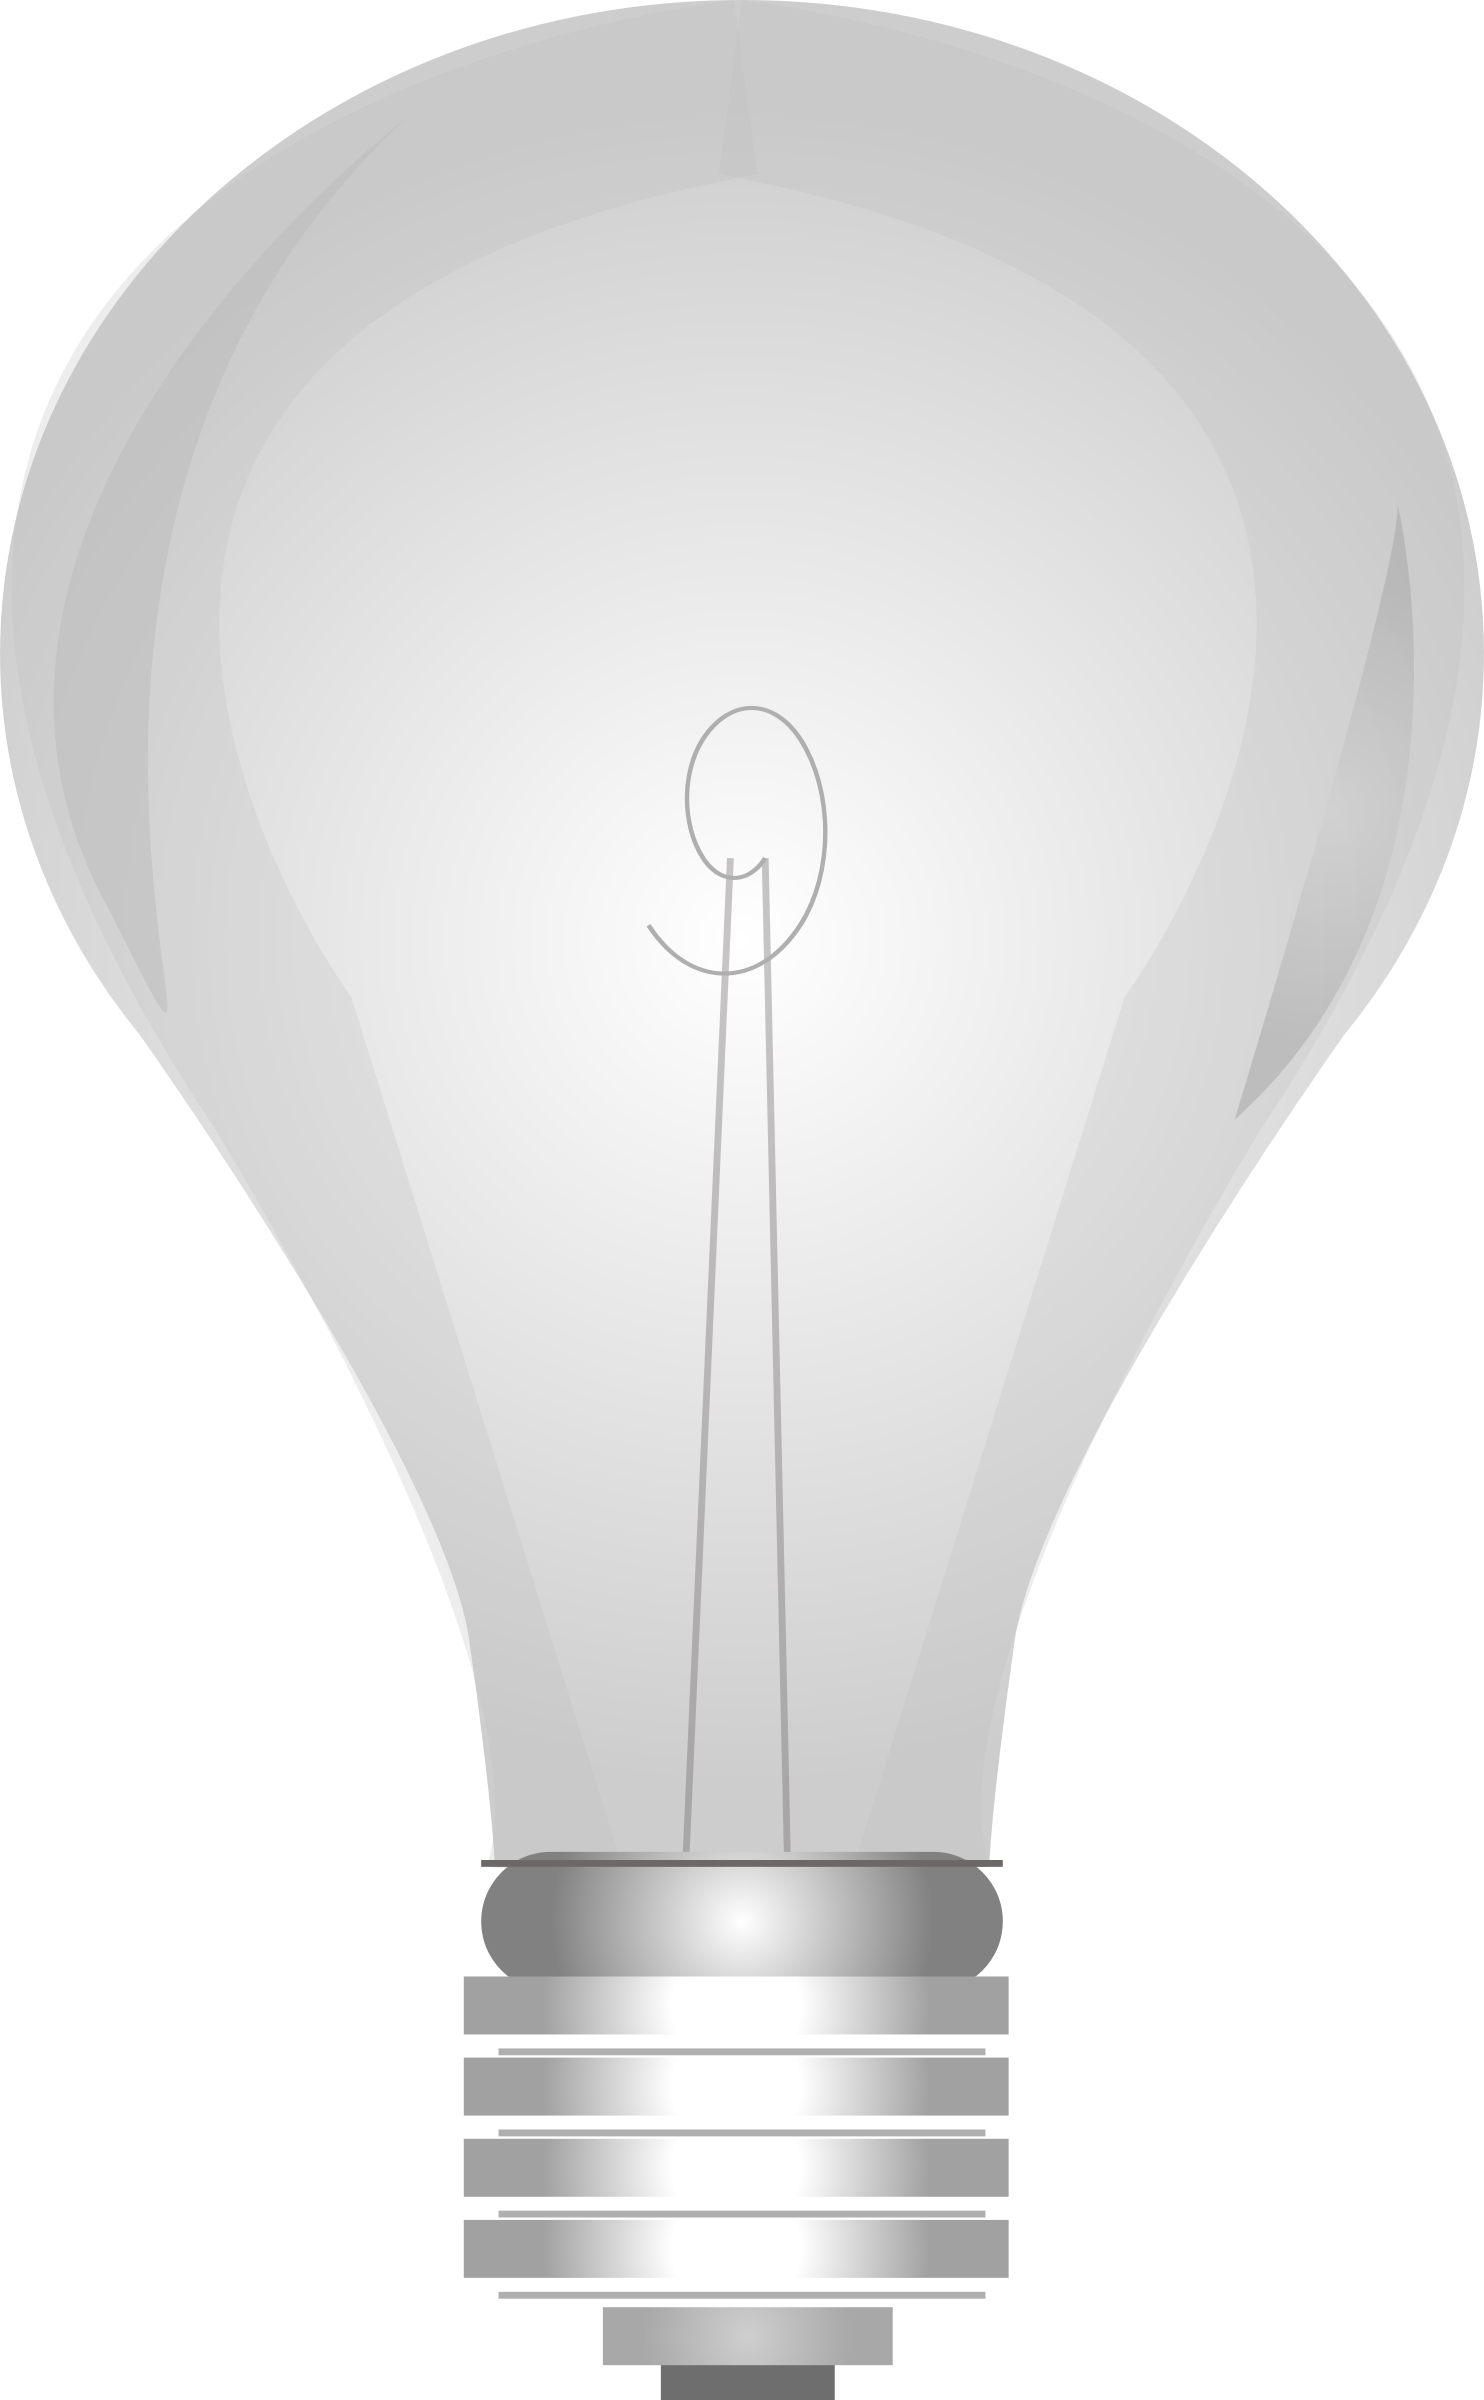 Lightbulb Grayscale by iedesign